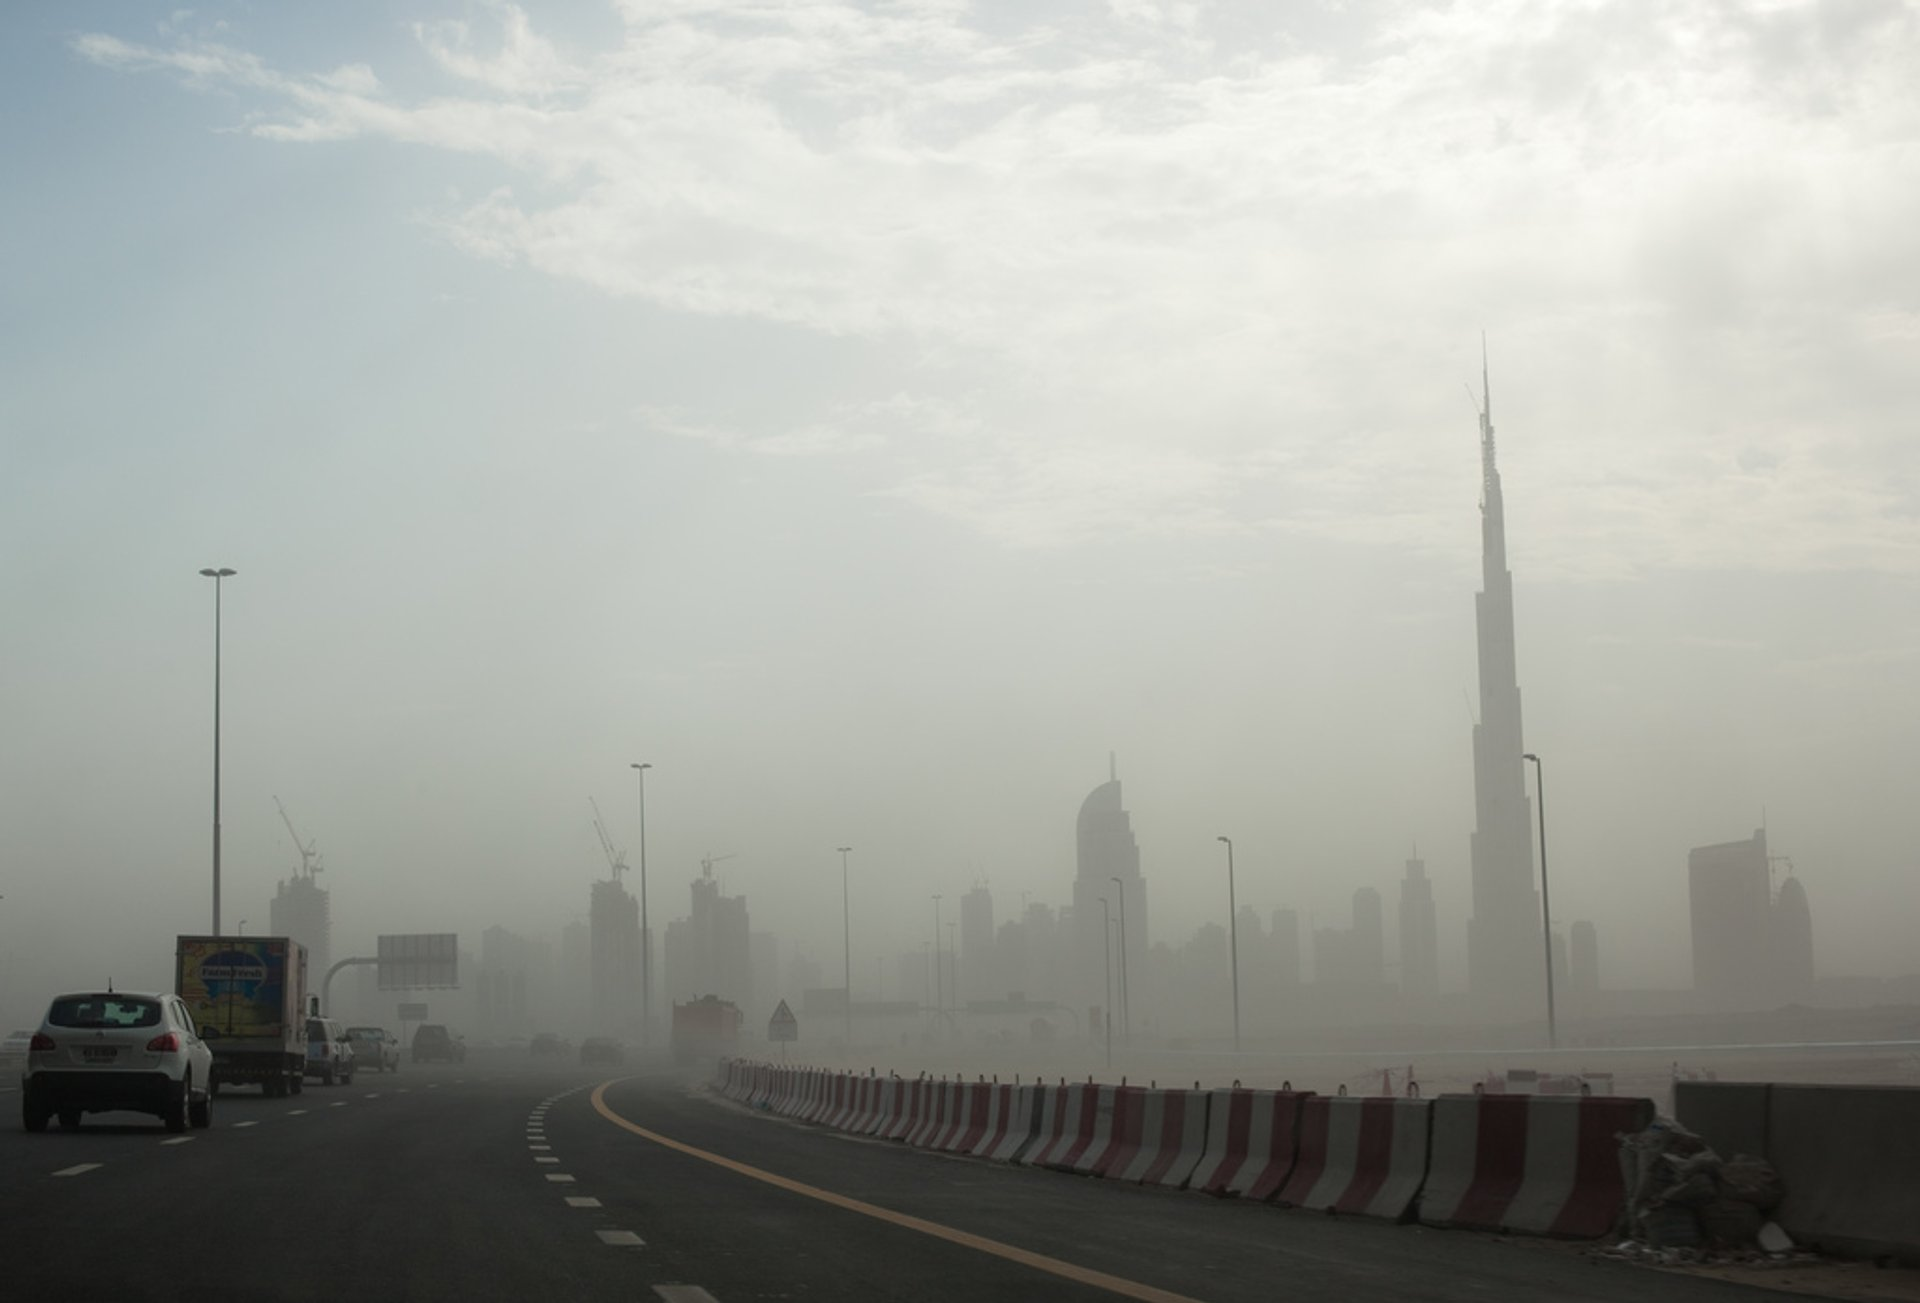 Sandstorms in Dubai 2019 - Best Time